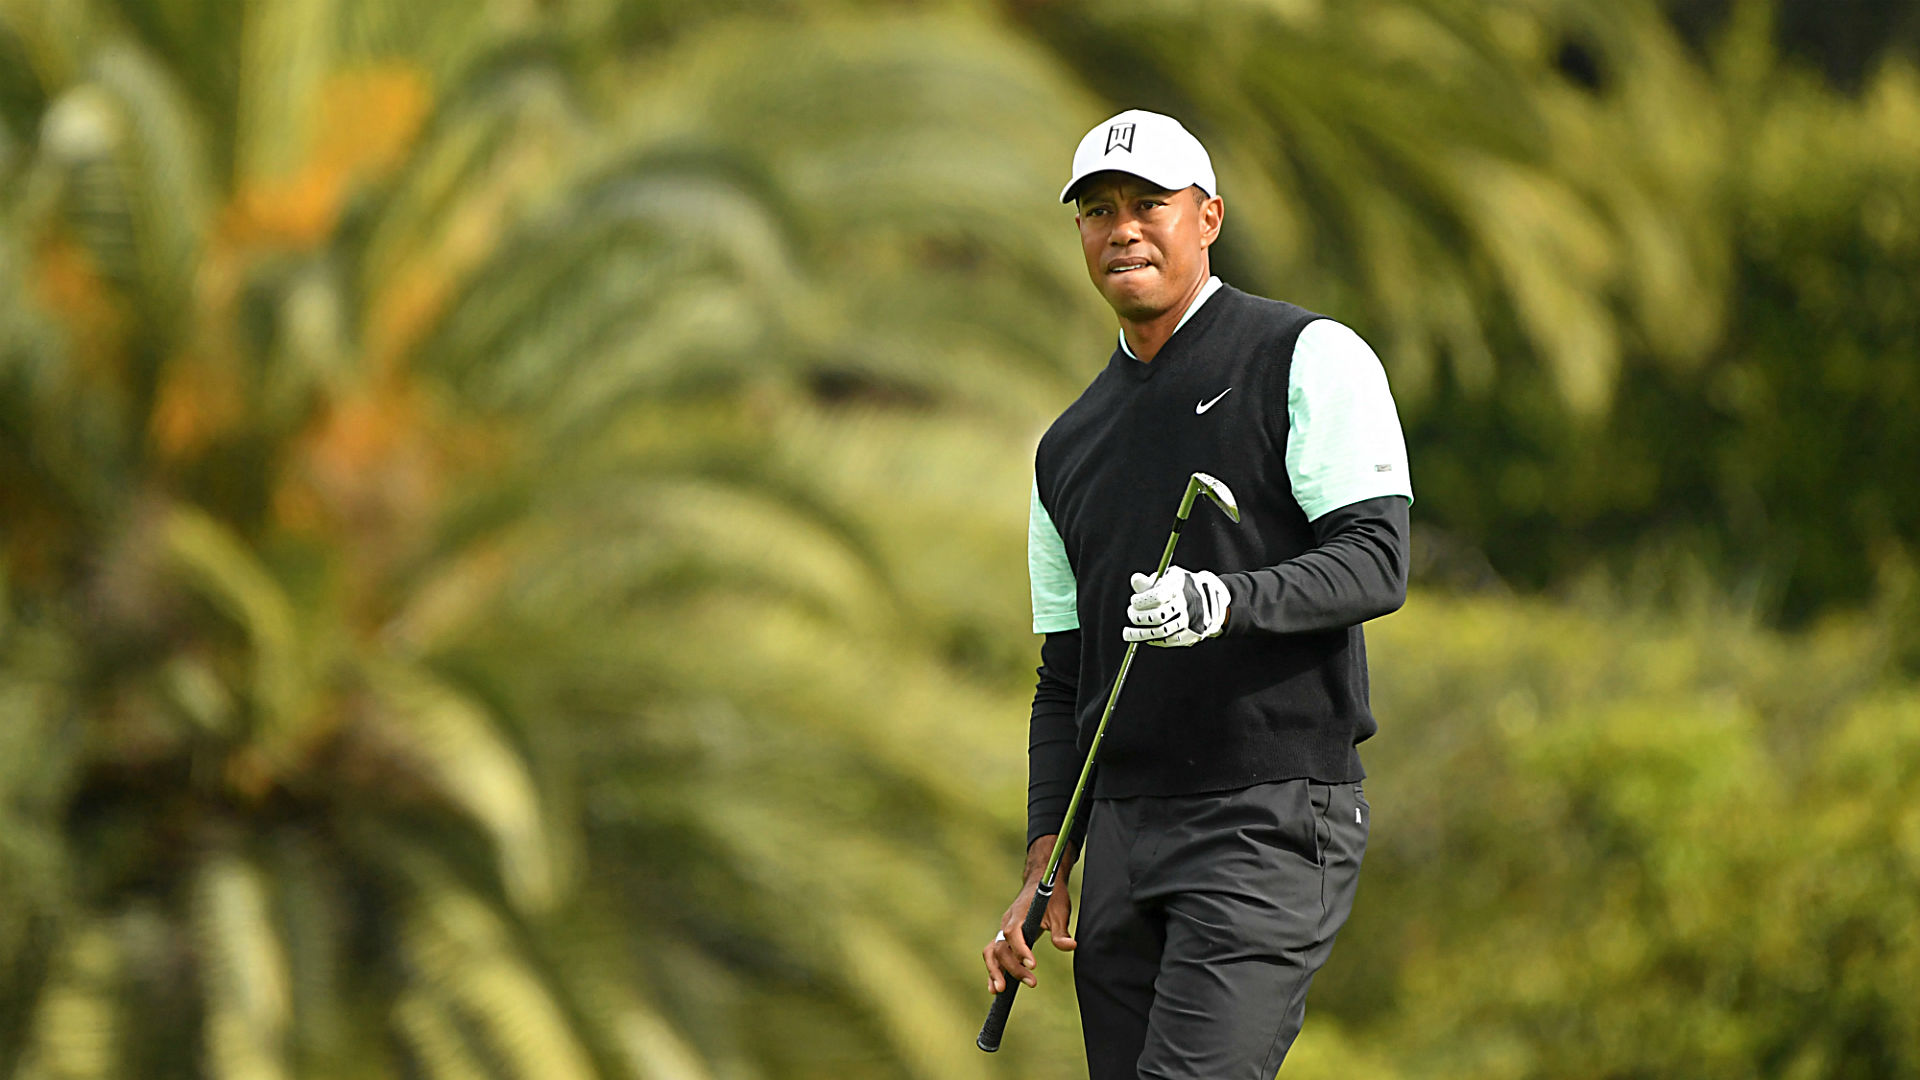 Wgc Mexico 2019 Tiger Woods Tee Times For Round 4 Tv